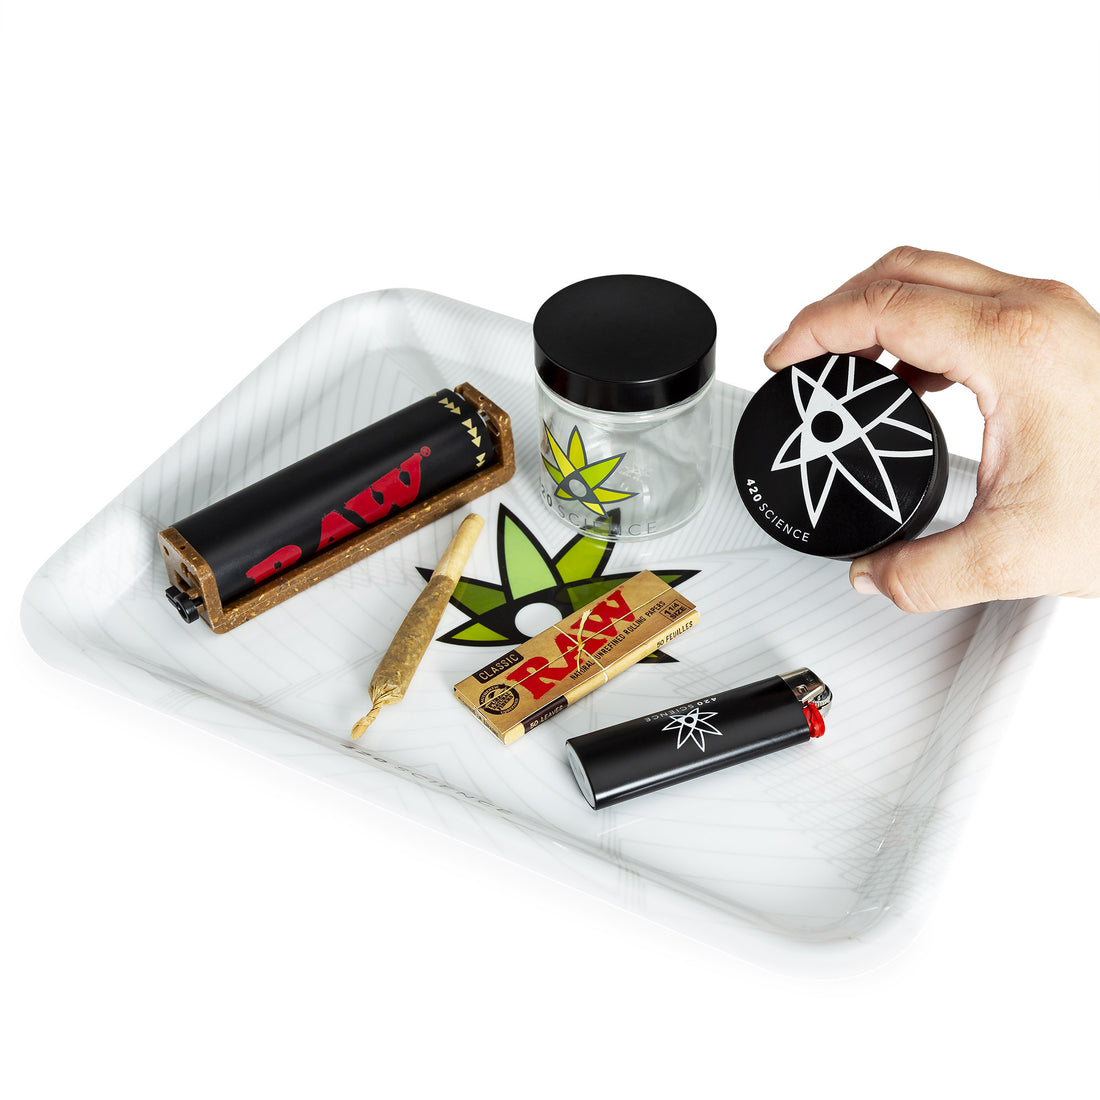 420 Science Rolling Tray - 420 Logo - 420 Science - The most trusted online smoke shop.